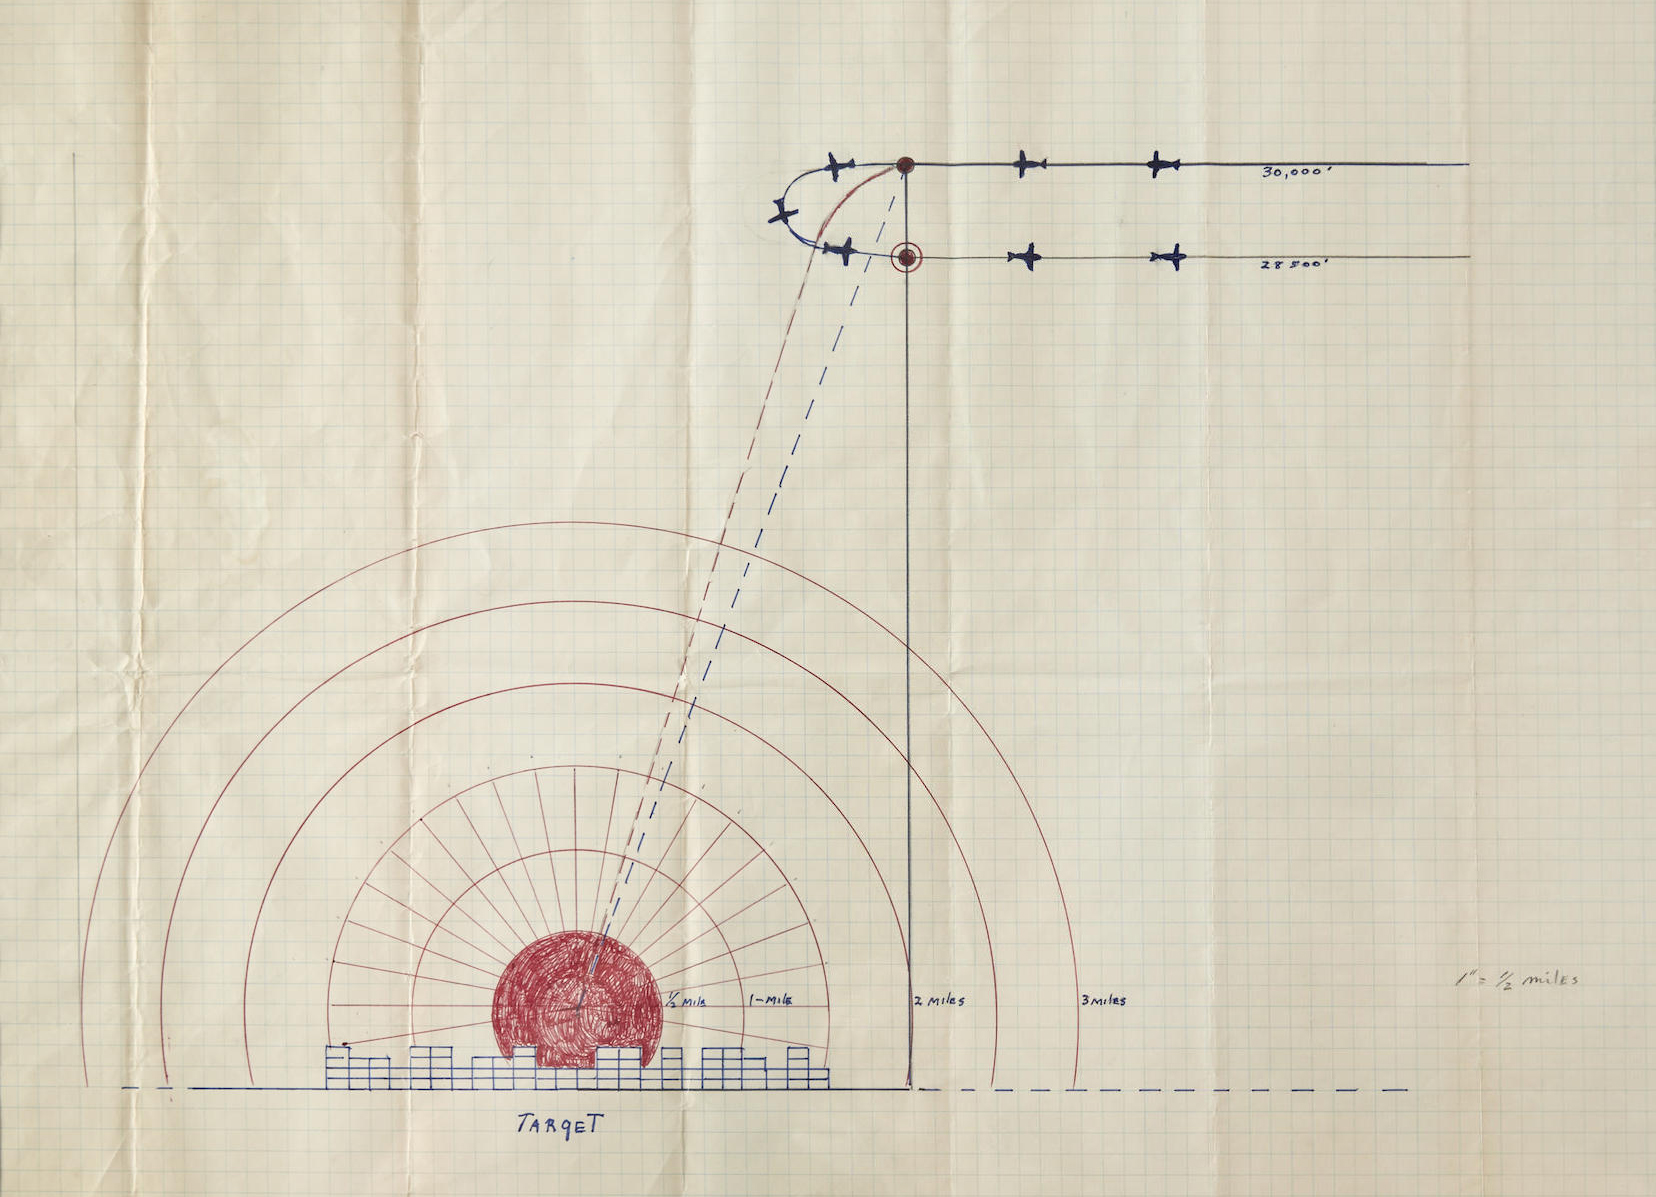 Capt. Robert A. Lewis' manuscript bombing plan for the dropping of the atomic bomb on Hiroshima, (6 August 1945), 16in x 22in. Estimate: $20,000-$30,000. Bonhams image